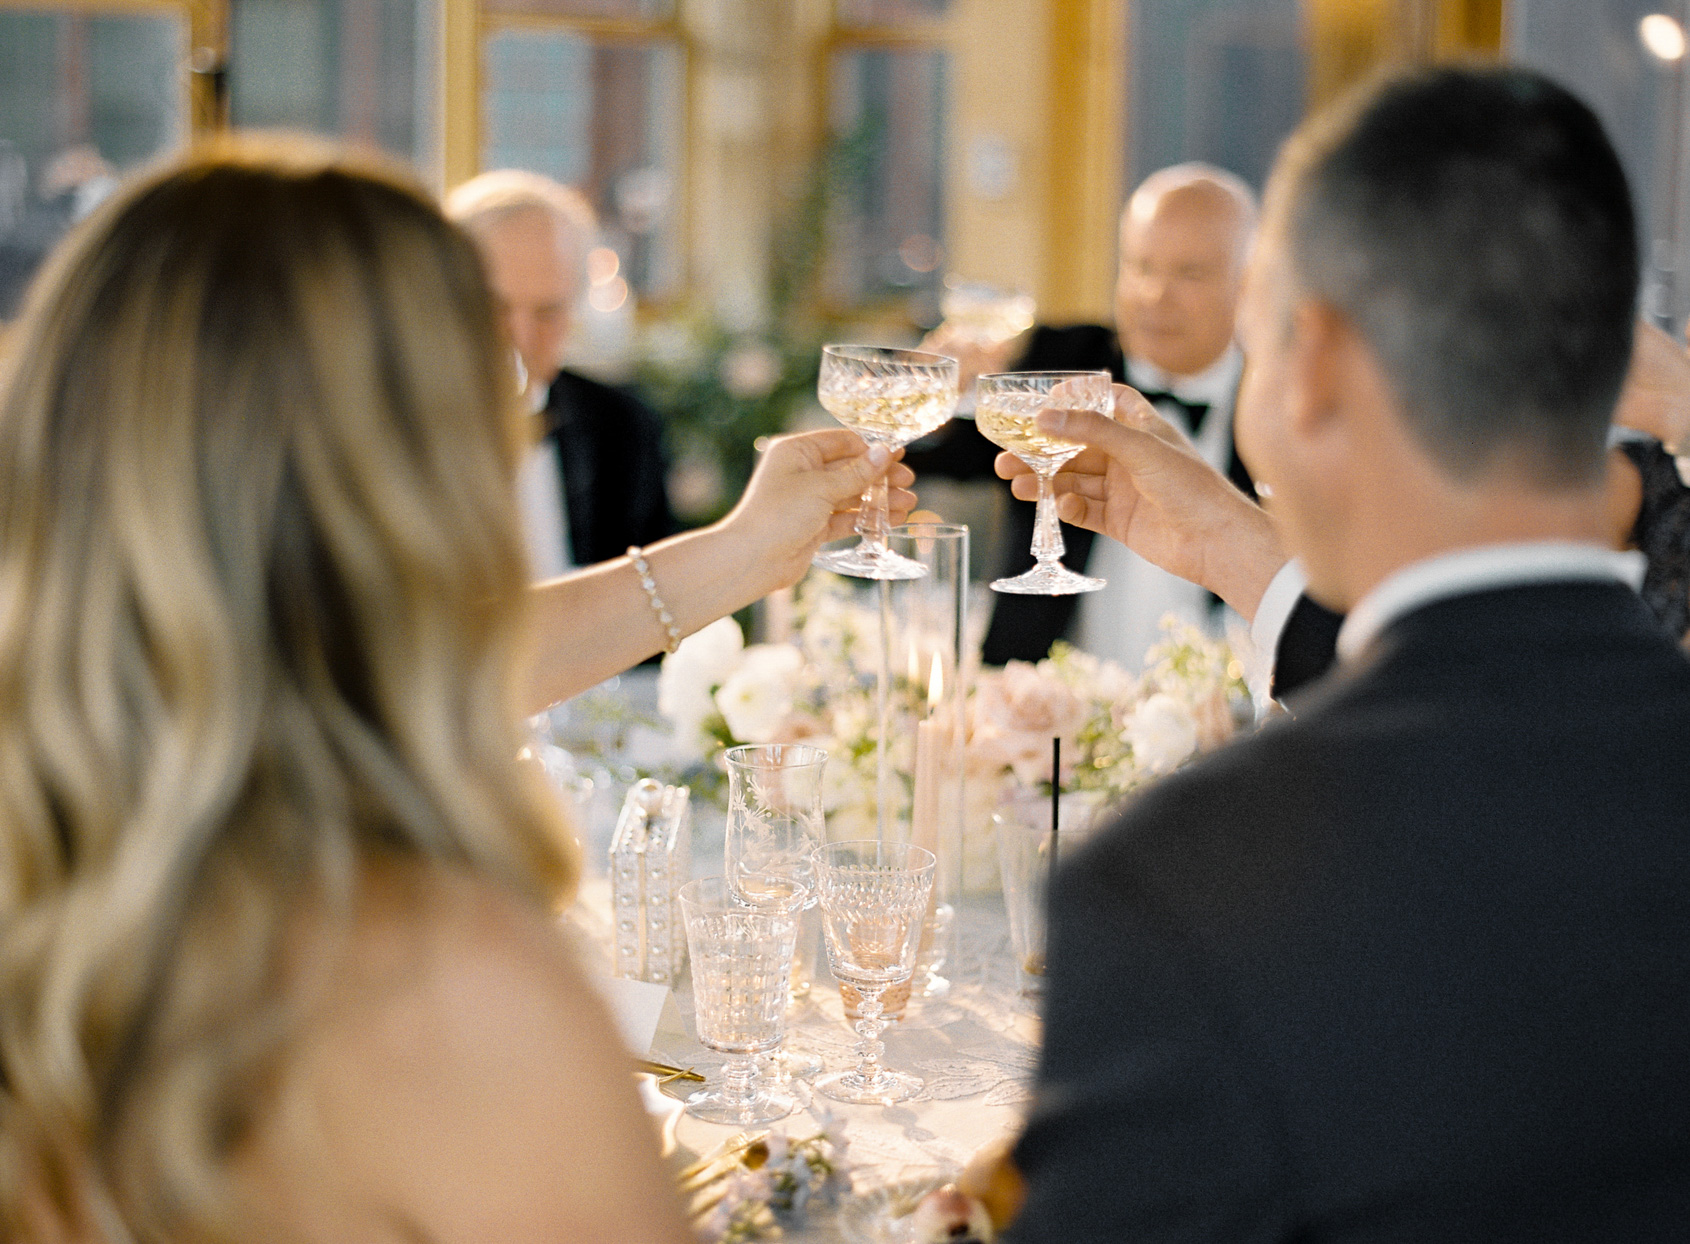 bride and groom toasting at wedding reception